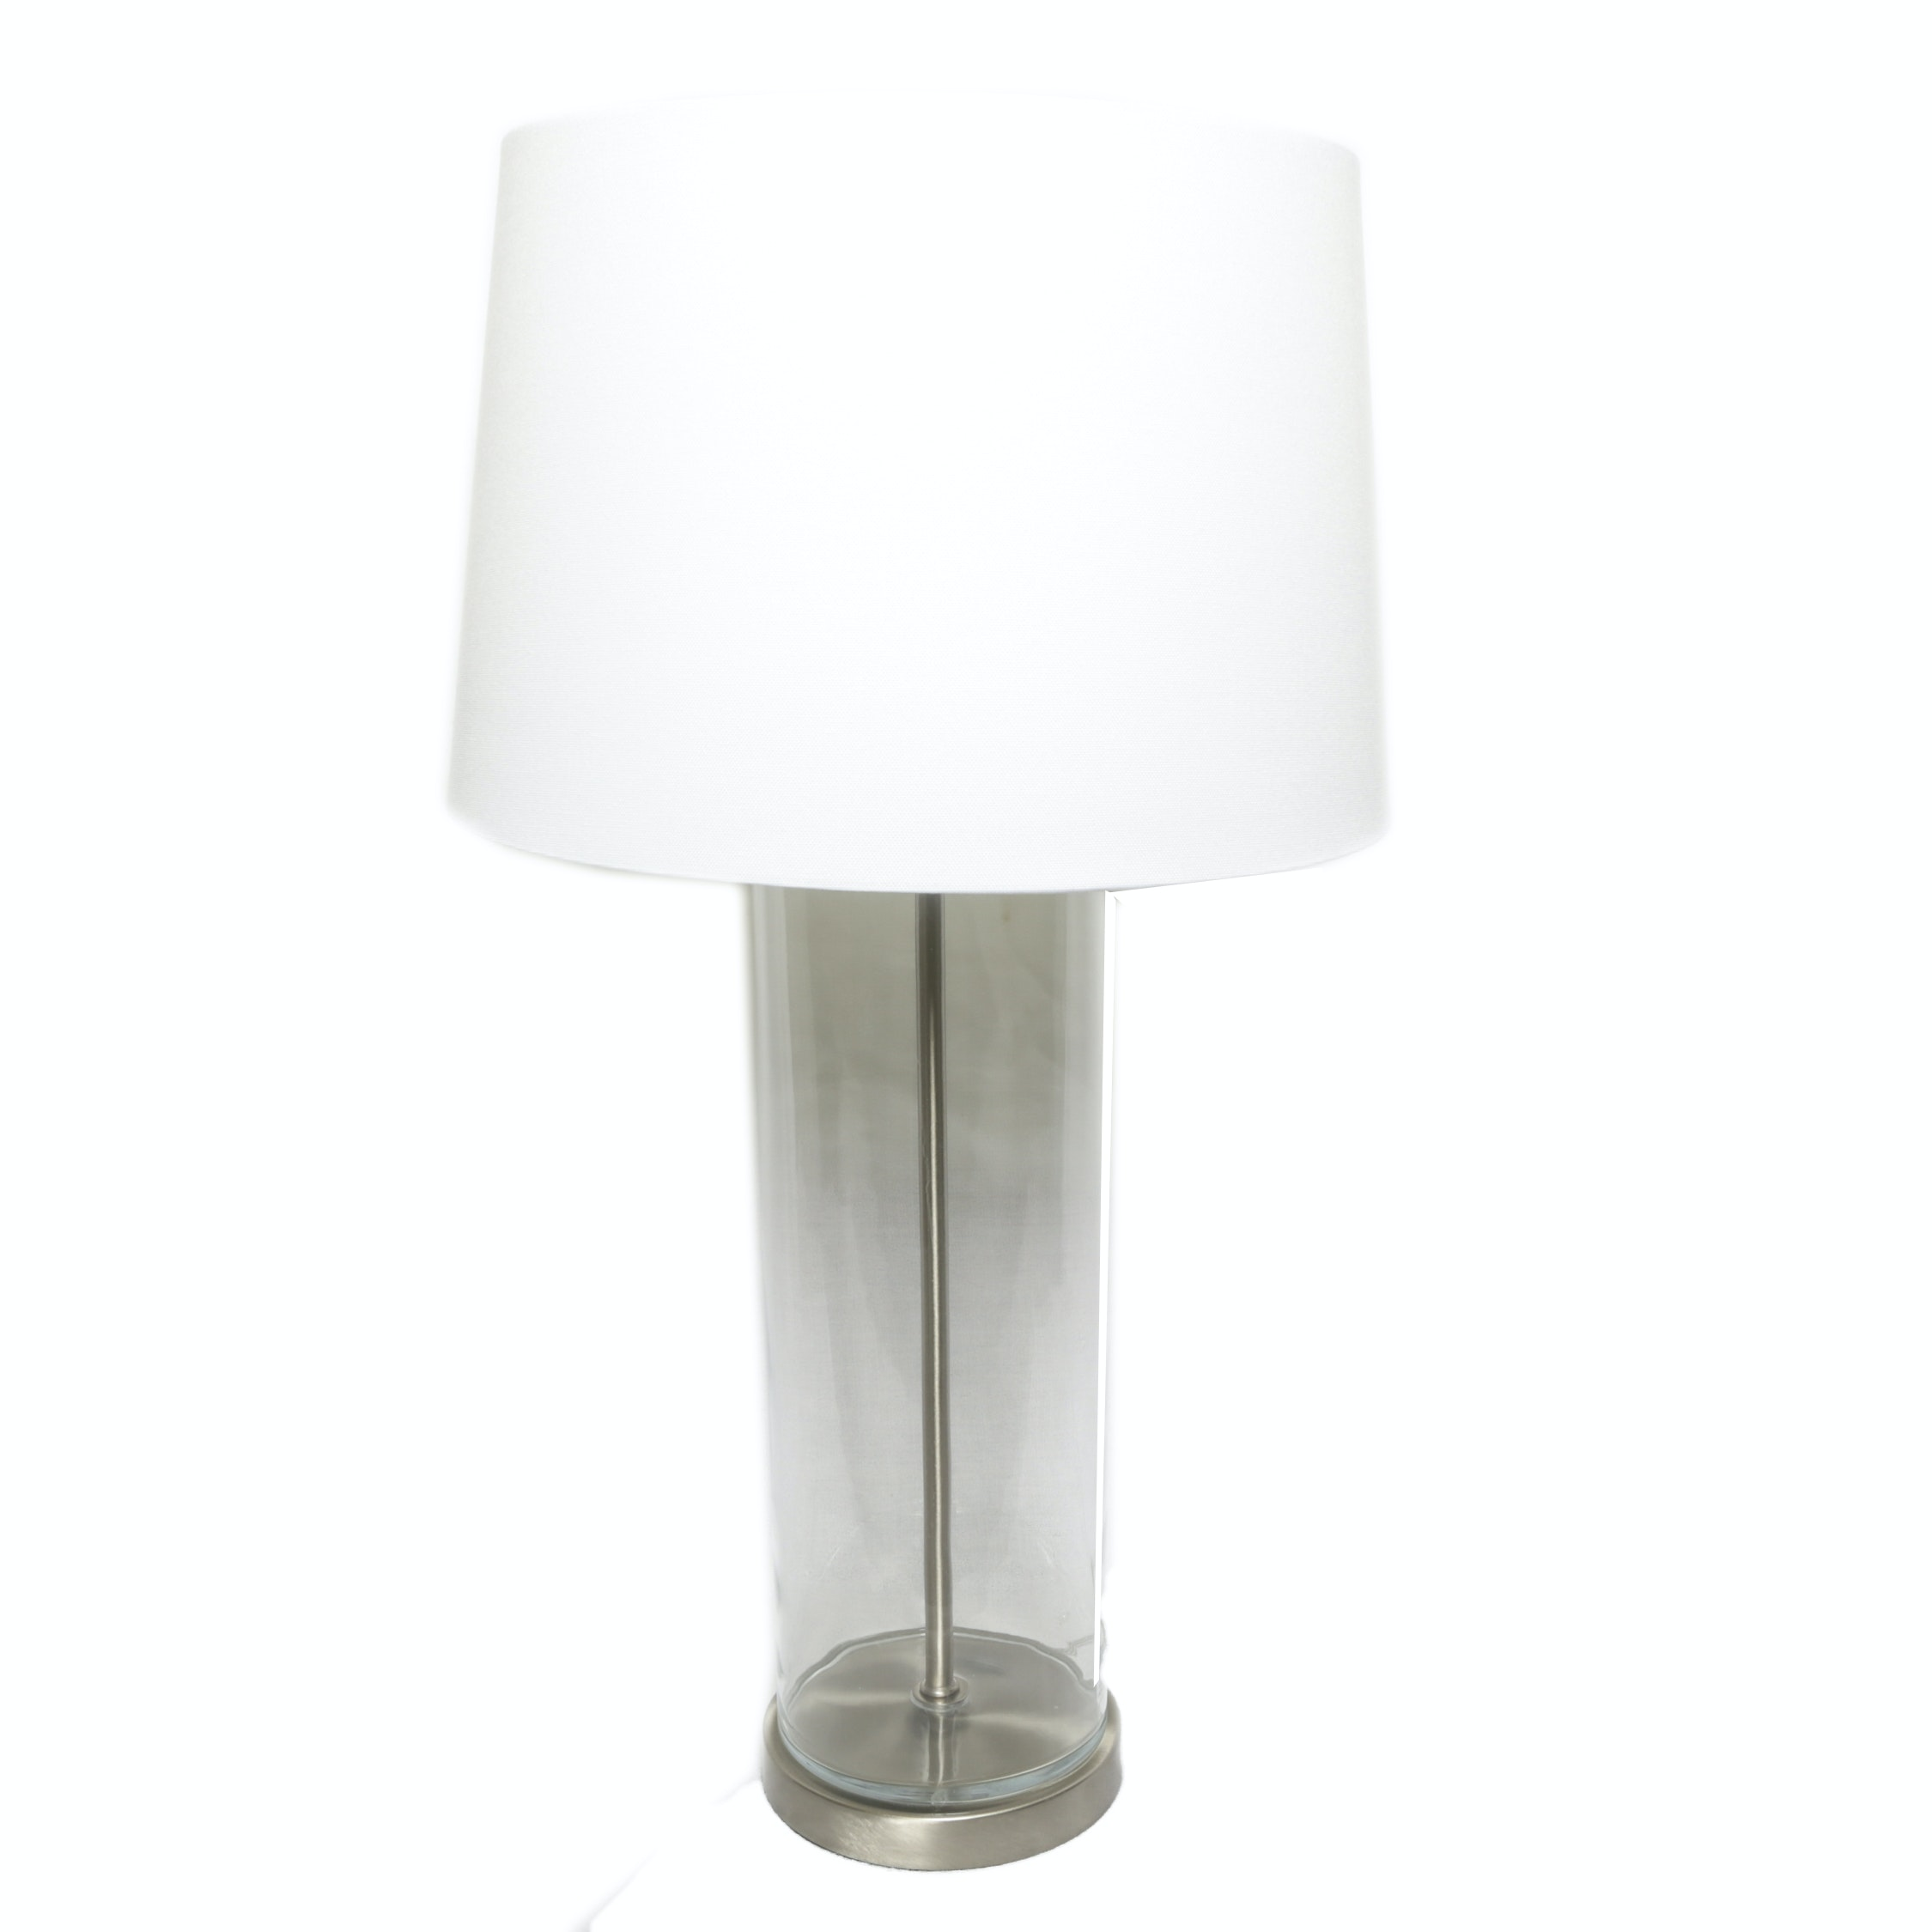 Cylindrical Glass and Silver Tone Metal Table Lamp w/ White Fabric Covered Shade